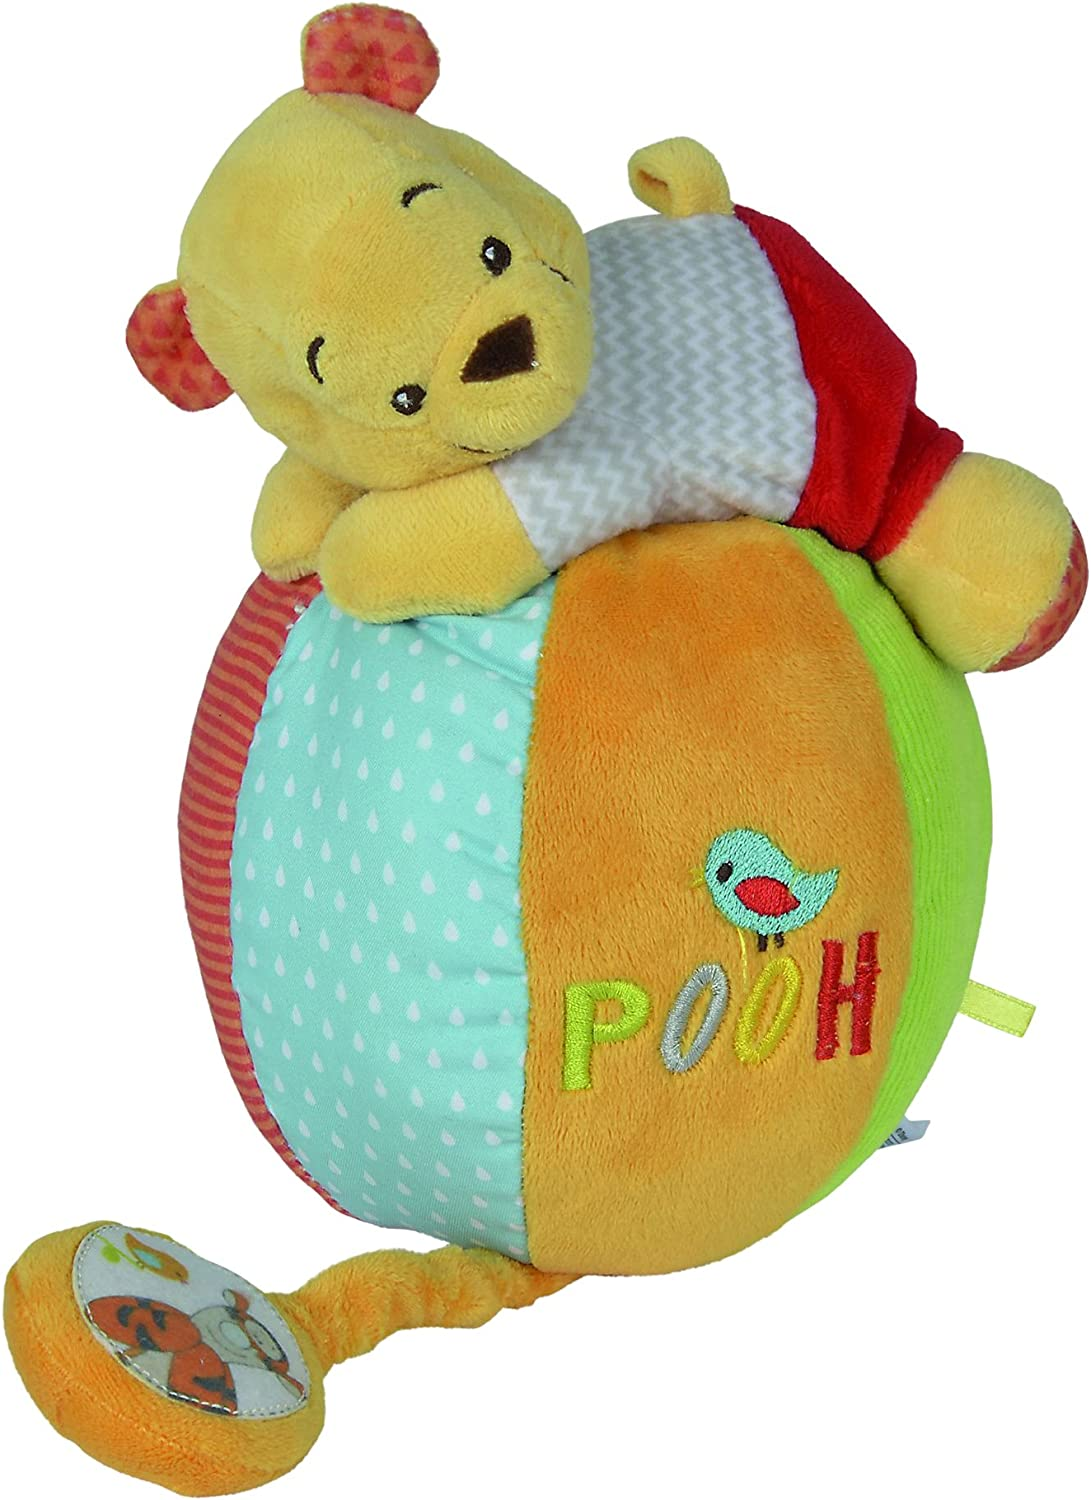 Disney juguete pelota musical Winnie Wonderland: Amazon.es: Bebé